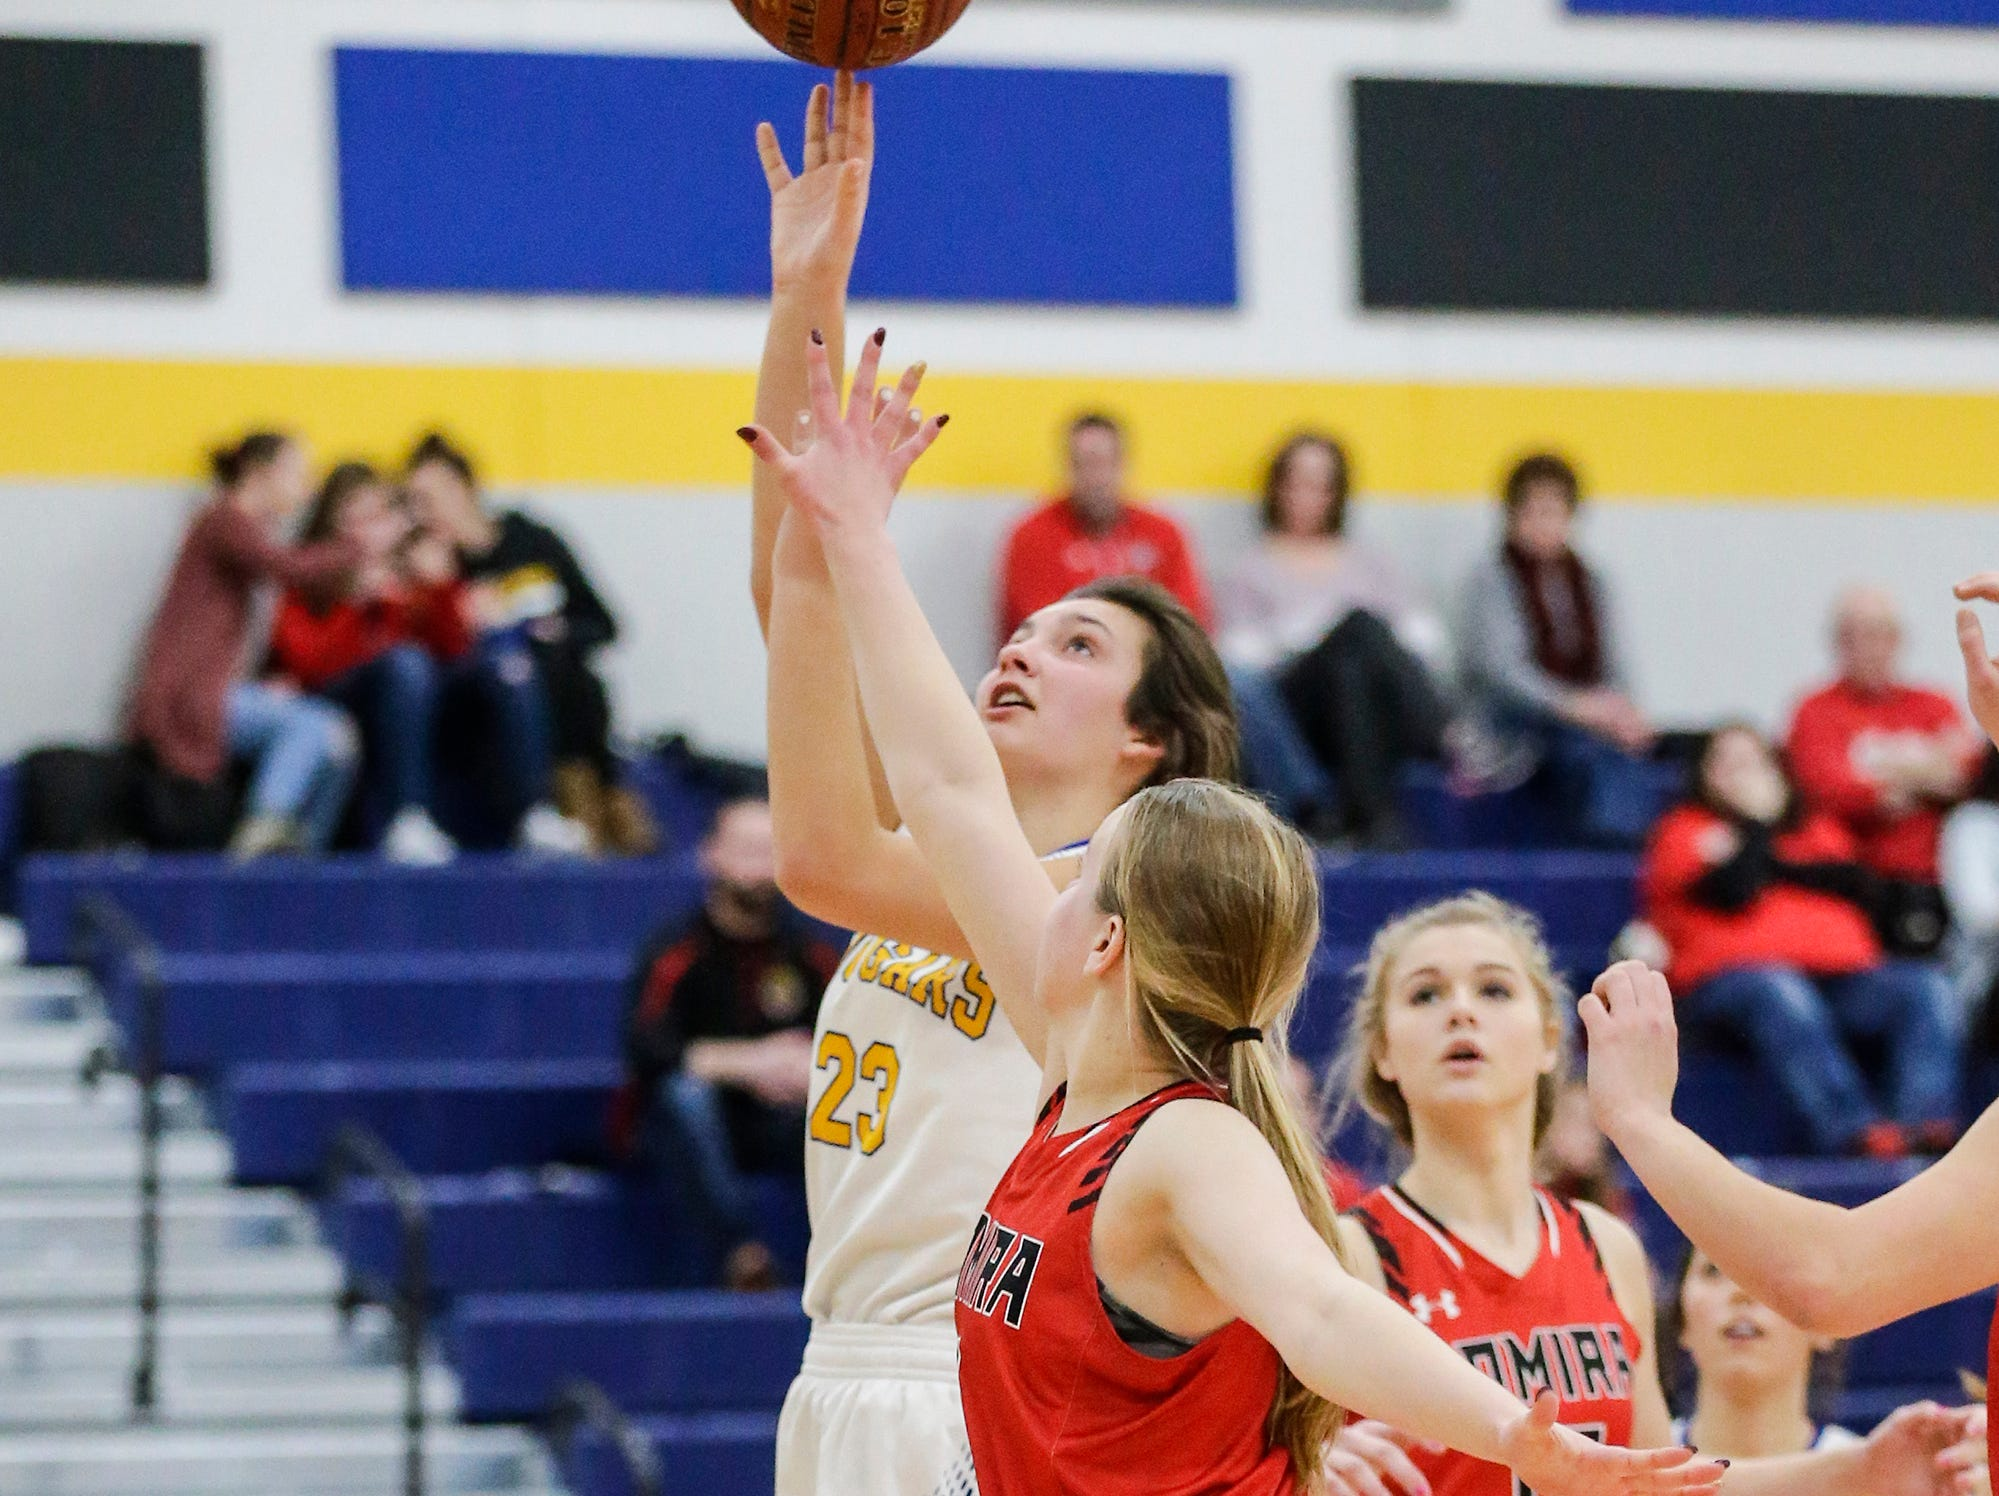 Campbellsport High School girls basketball's Madilyn Danza goes up for a basket against Lomira High School during their game Friday, December 28, 2018 in Campbellsport. Doug Raflik/USA TODAY NETWORK-Wisconsin